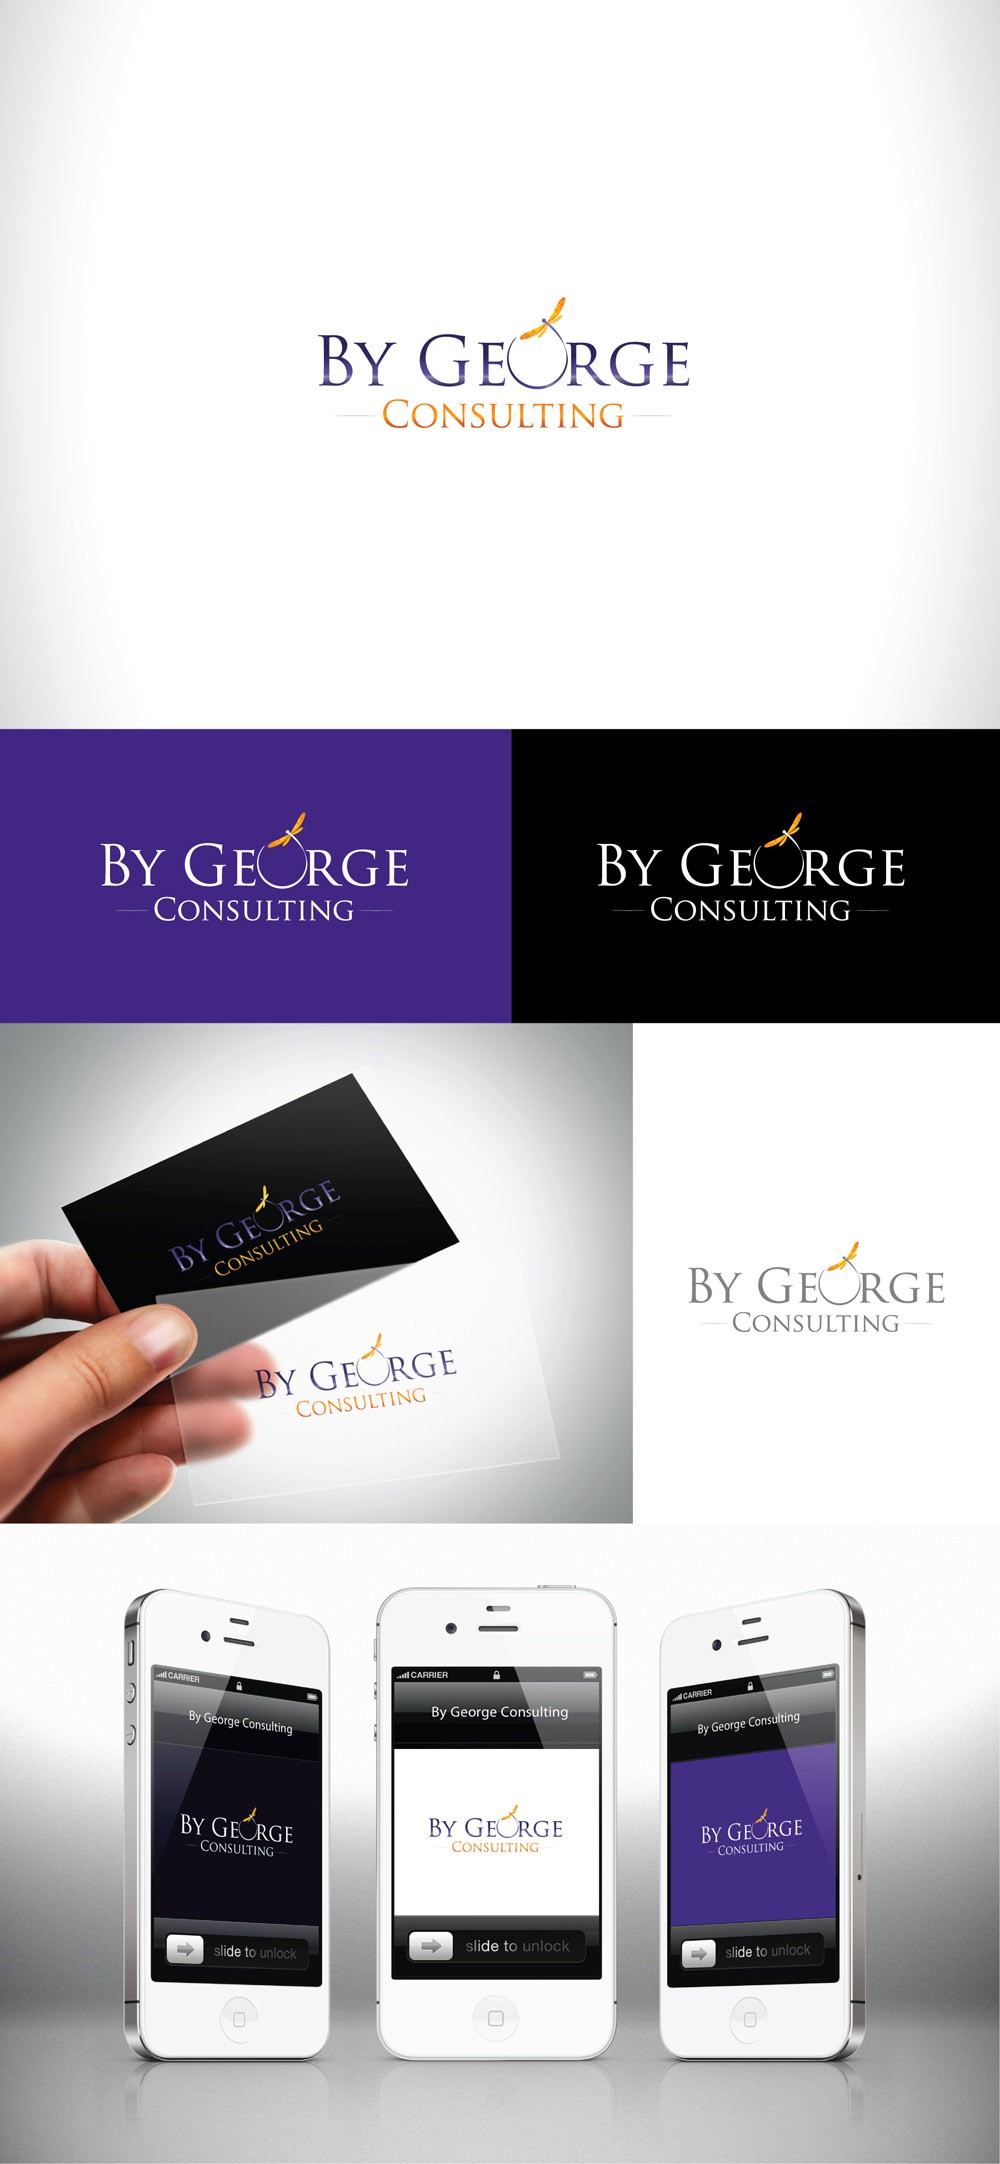 By George Consulting with a new logo